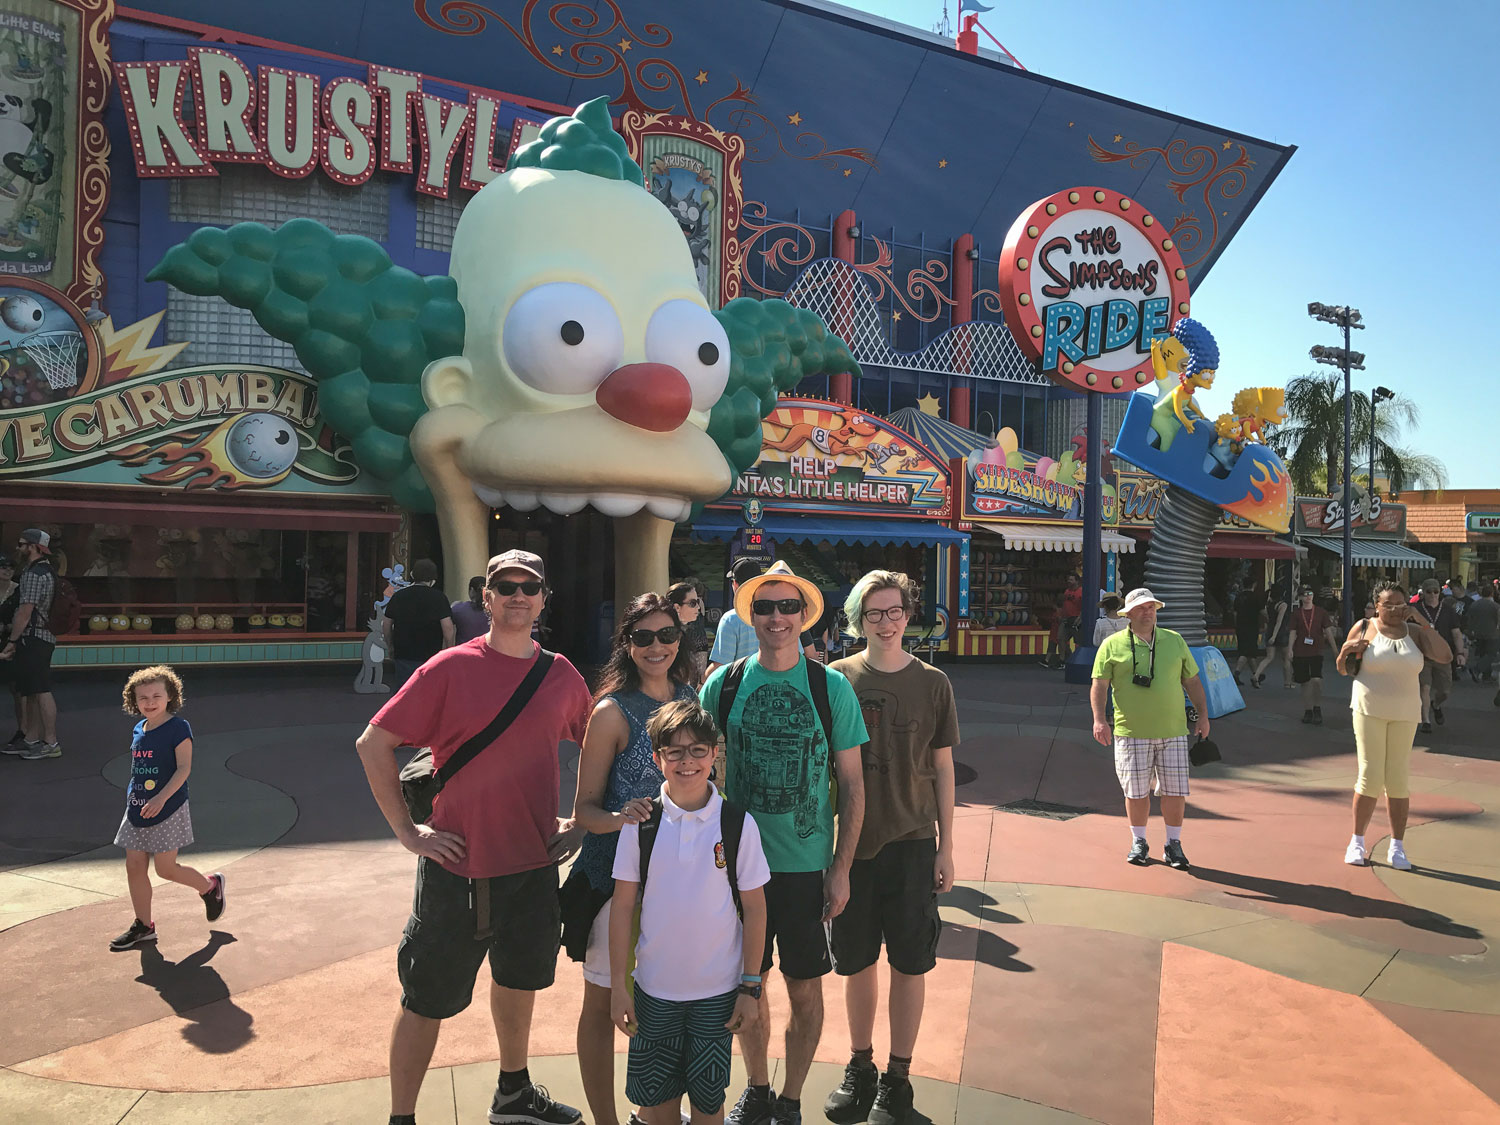 Tips for visiting Universal Studios Florida - The Simpsons